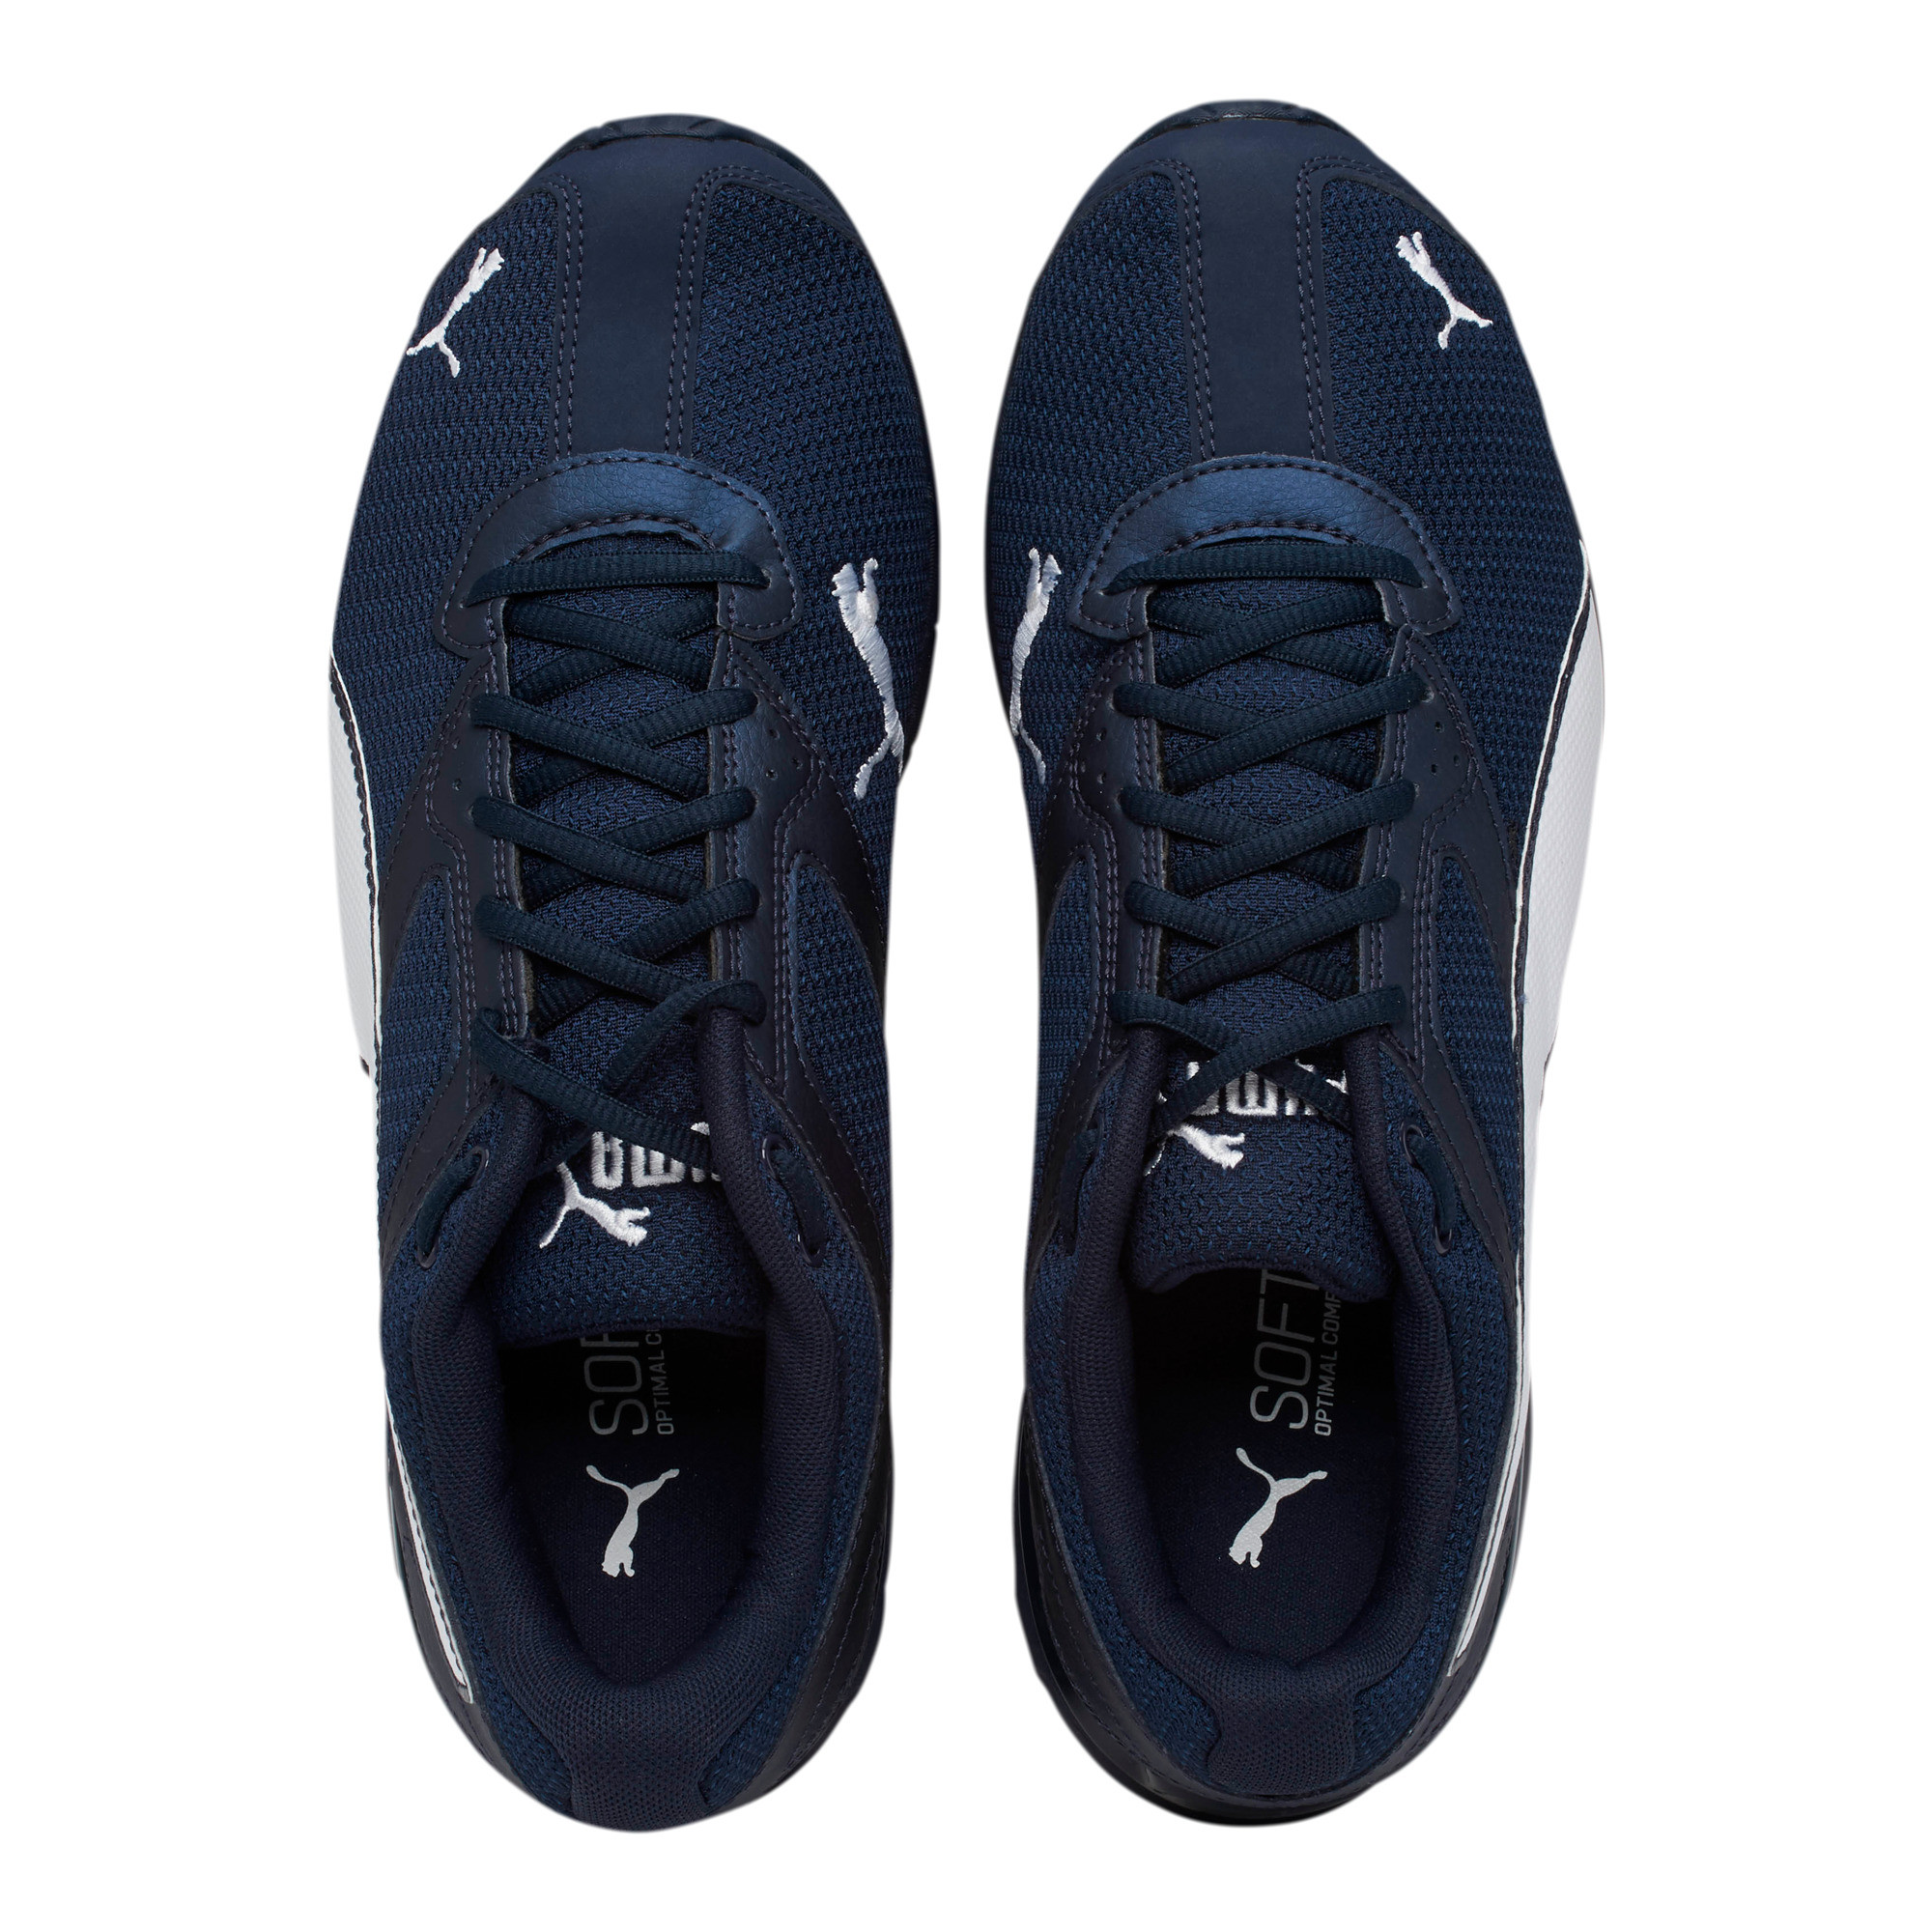 PUMA-Men-039-s-Tazon-6-Zag-Sneakers thumbnail 7